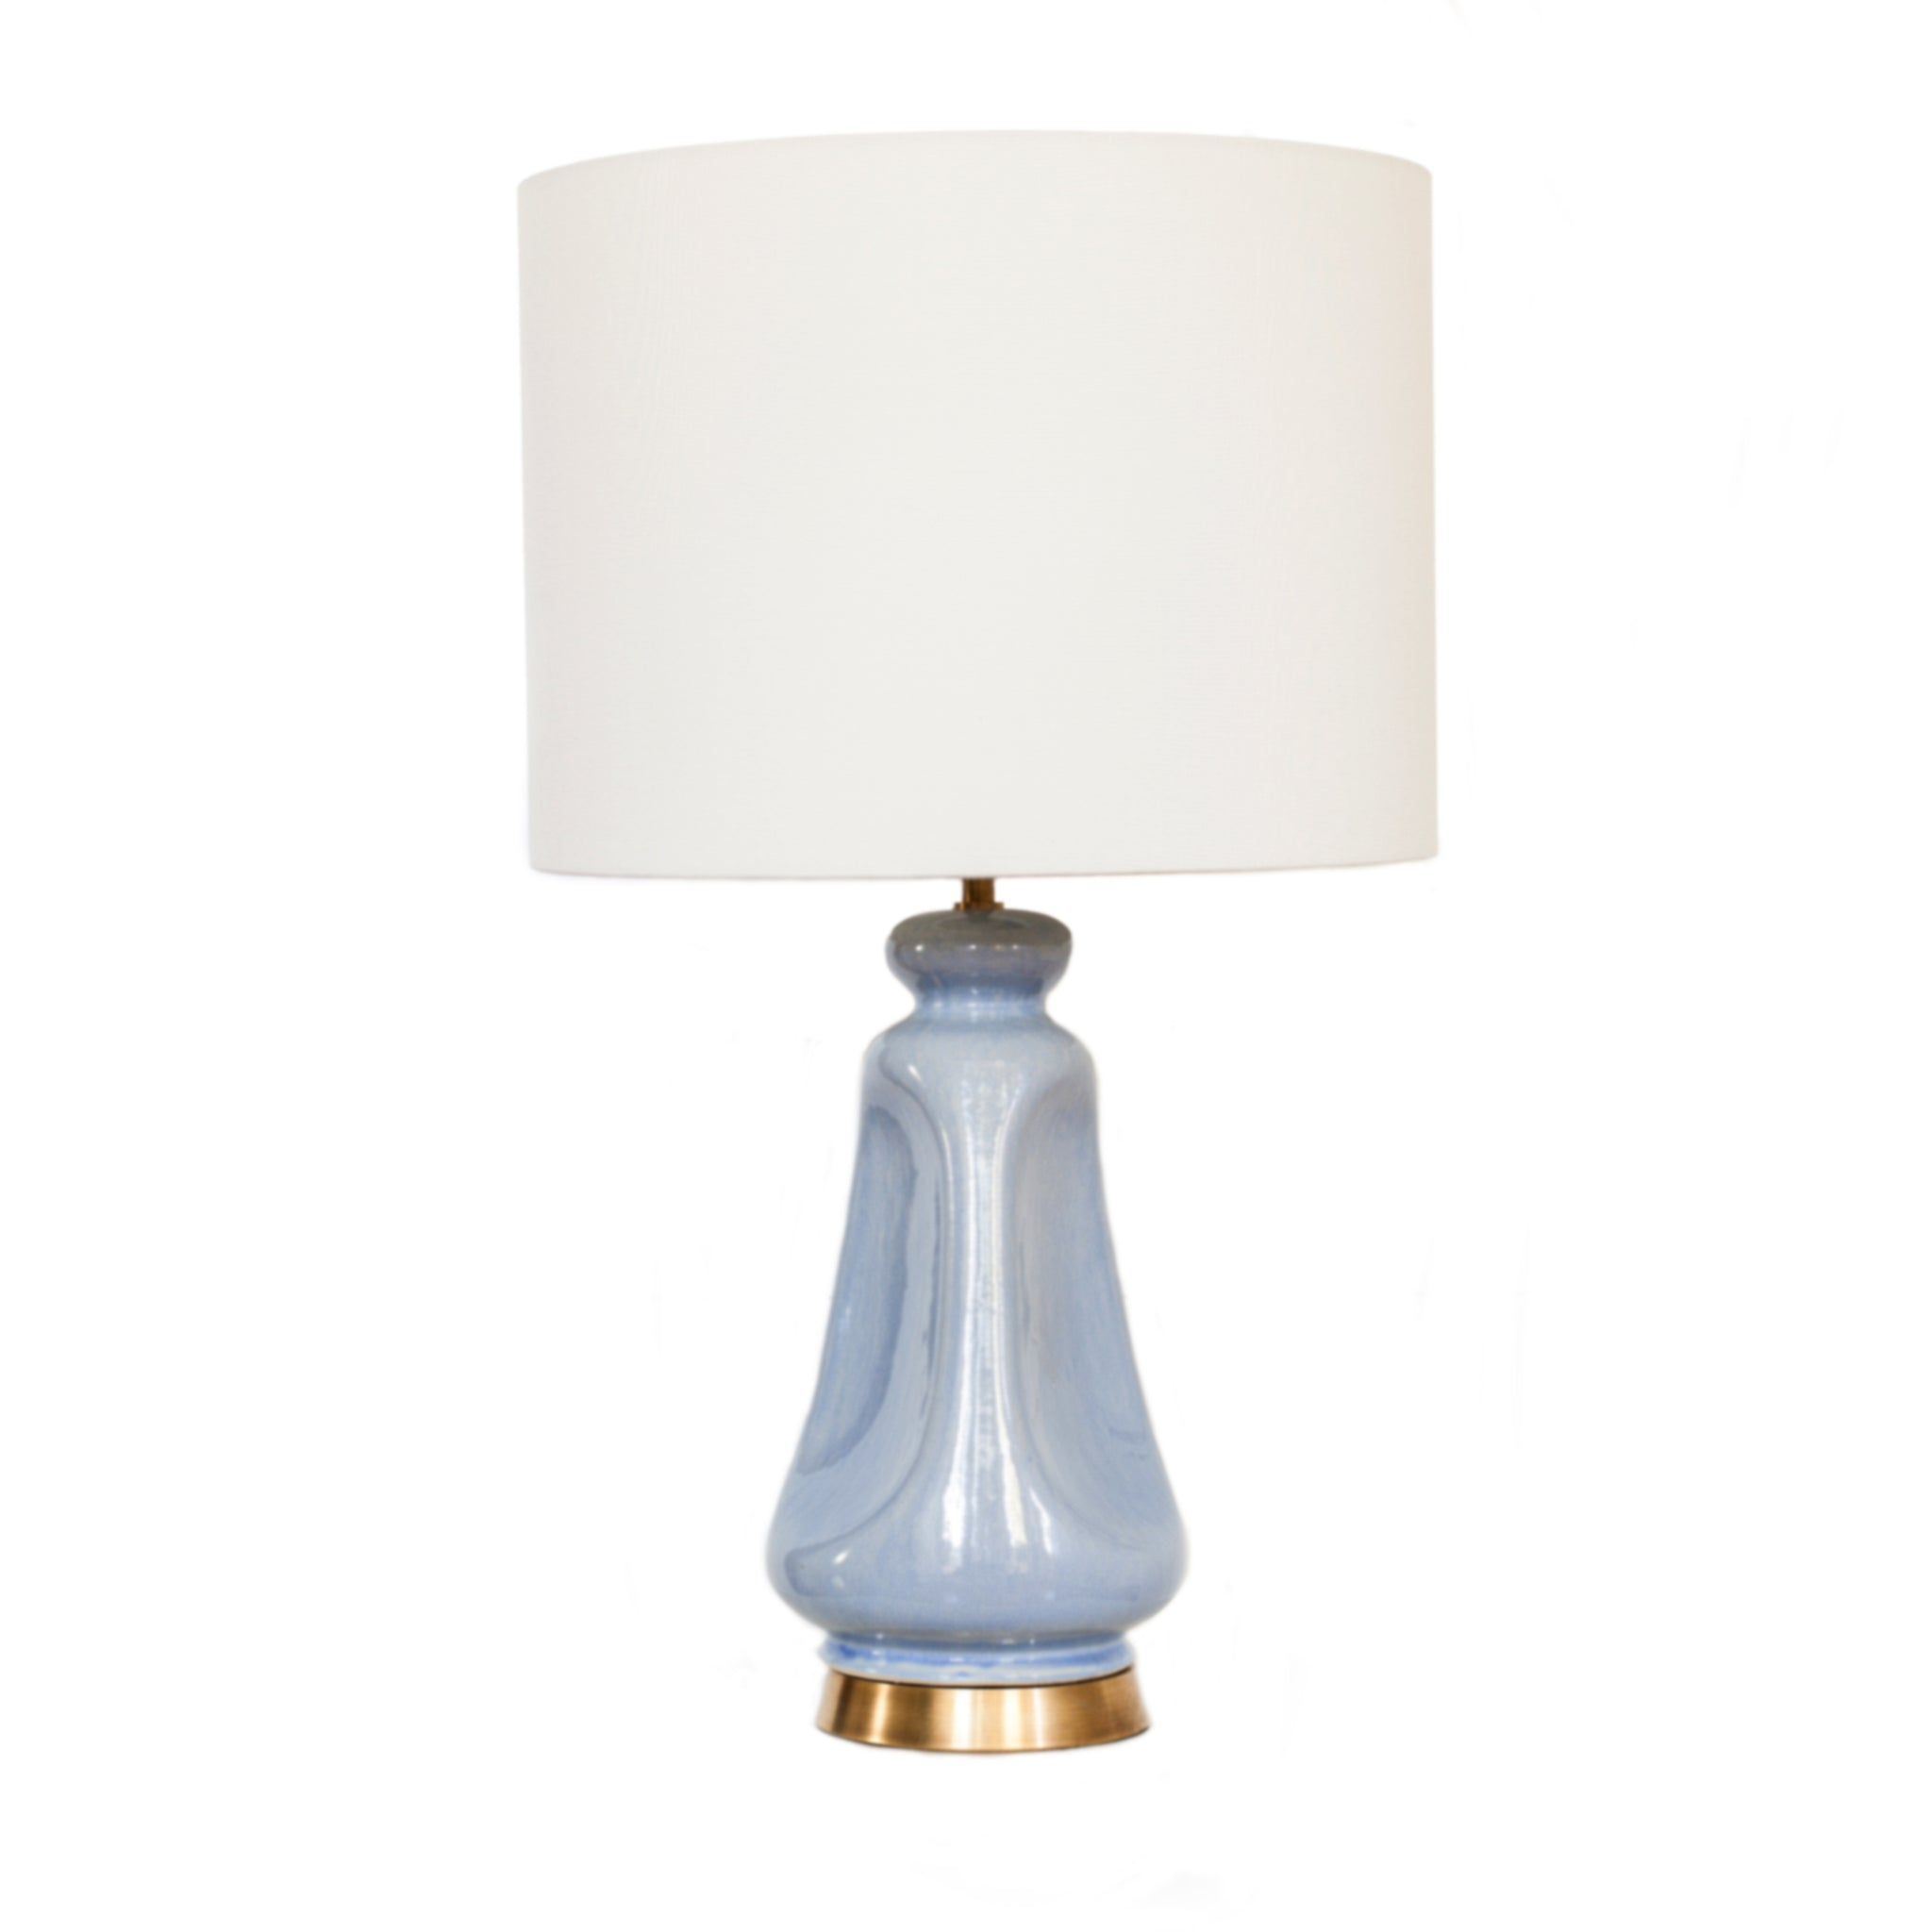 Kapila Table Lamp